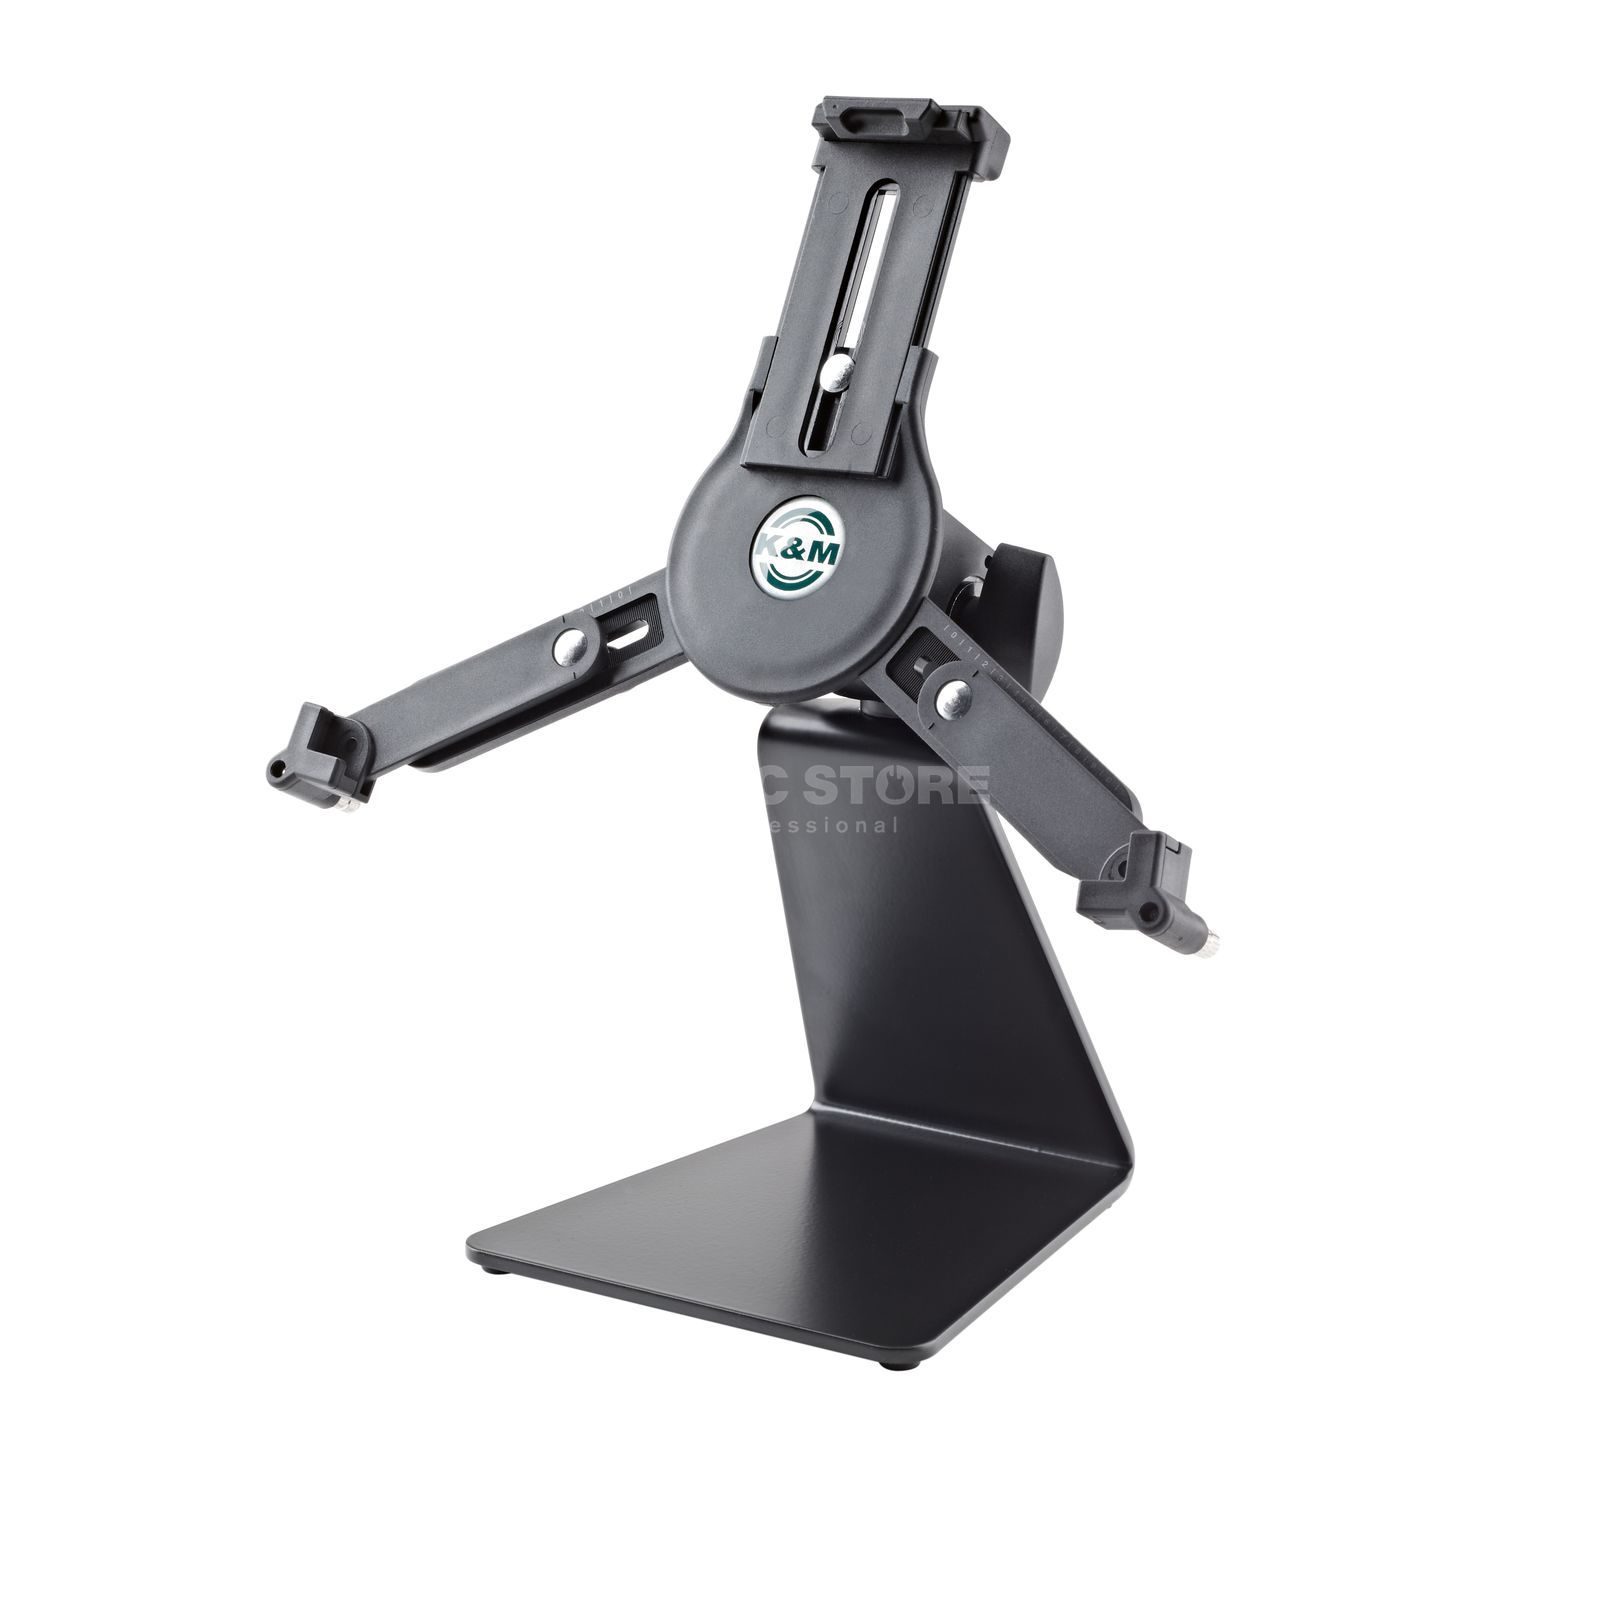 König & Meyer 19792 Tablet PC Table Stand Black Produktbillede